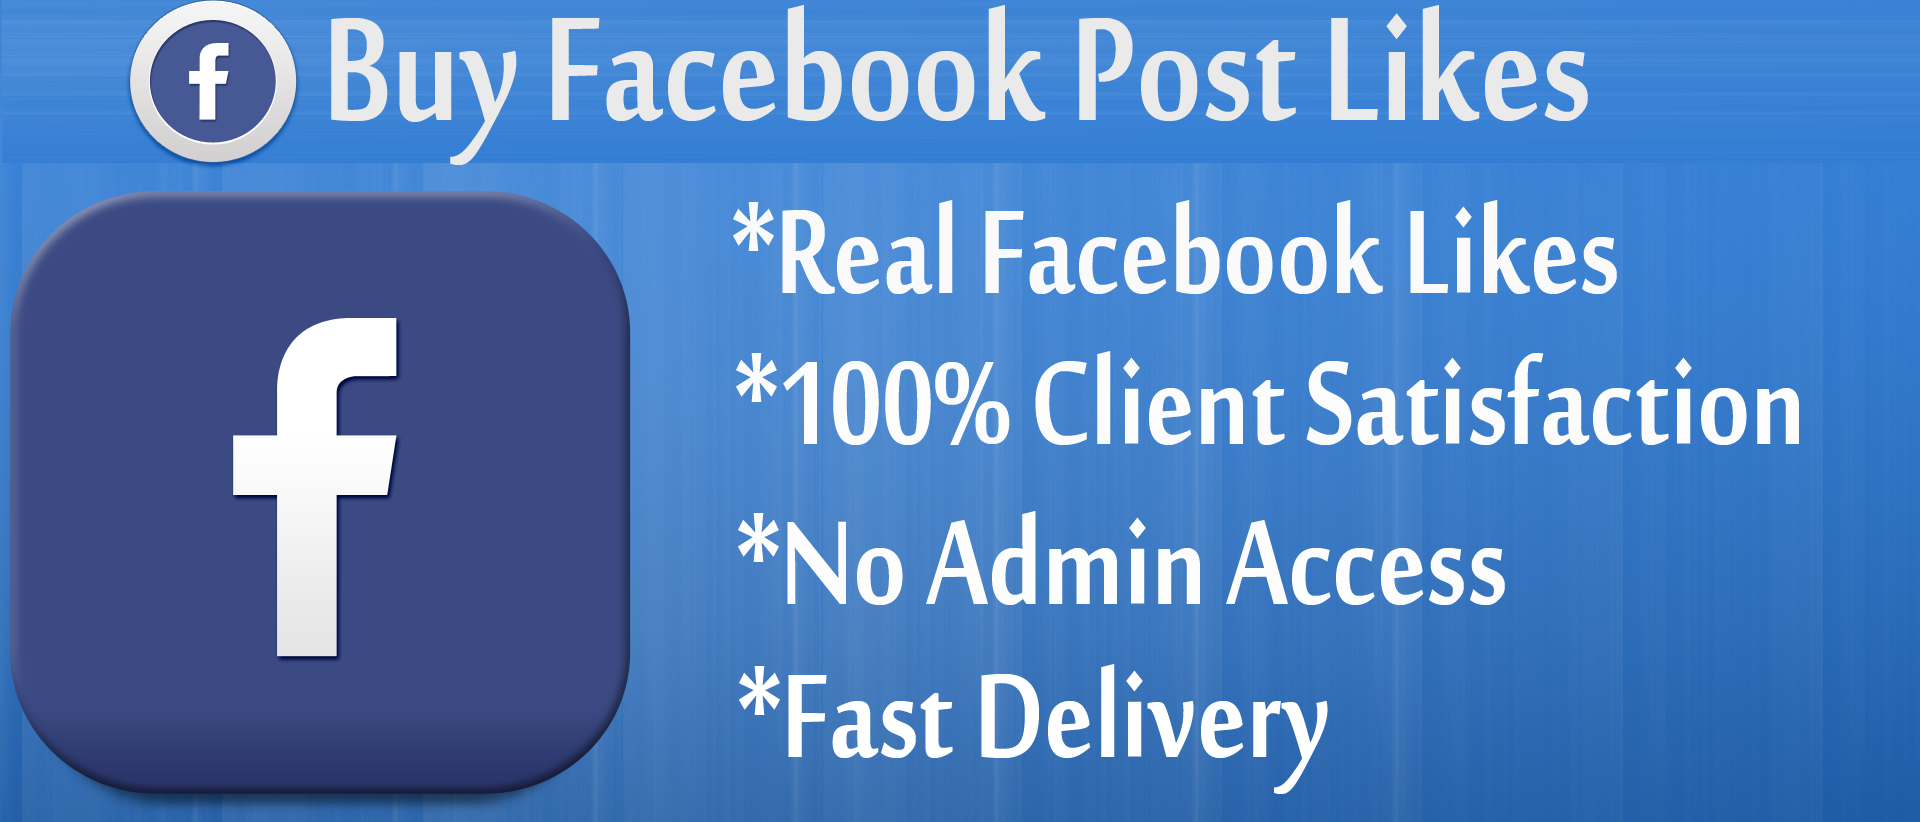 Give you 5000 Photo Likes or 200 Real Fanpage likes with Extra Fast Delivery